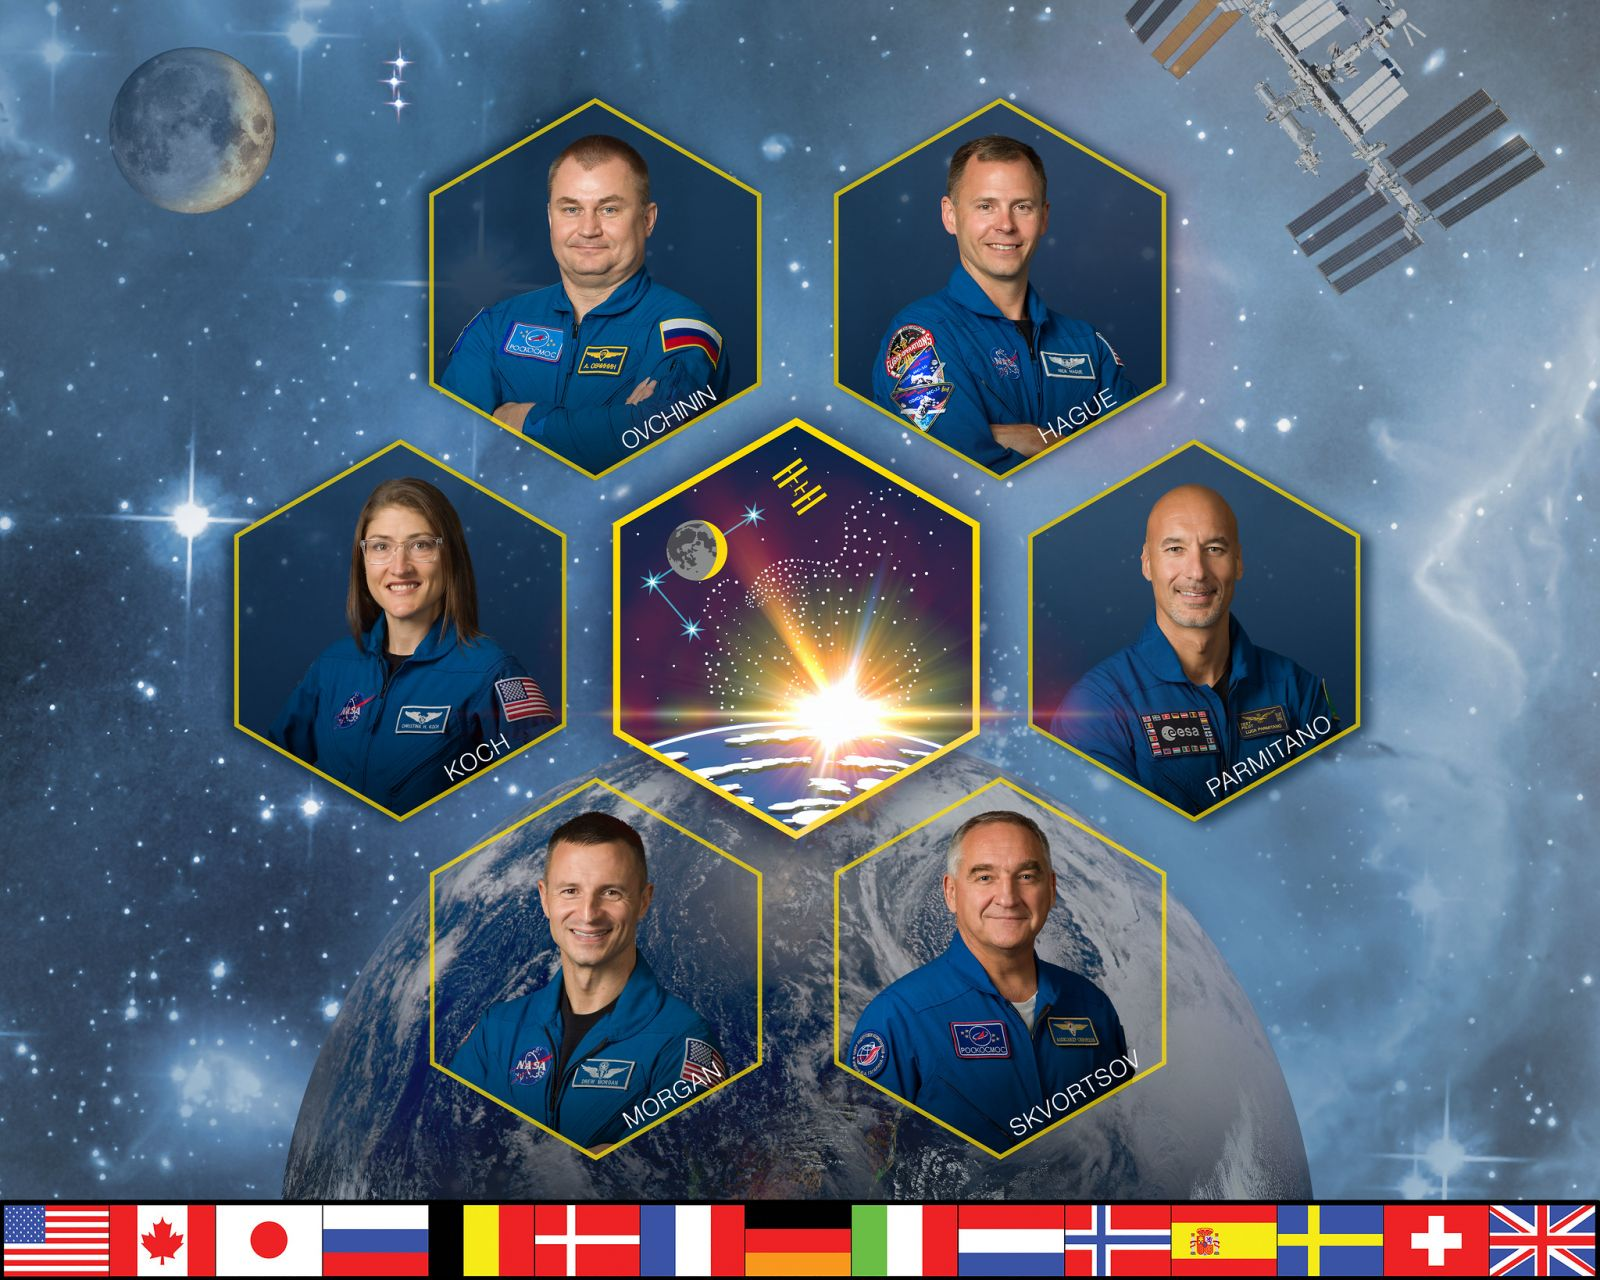 The official Expedition 60 crew portrait. That mission is set to begin with Soyuz MS-11 departs the International Space Station in June 2019. Photo Credit: NASA